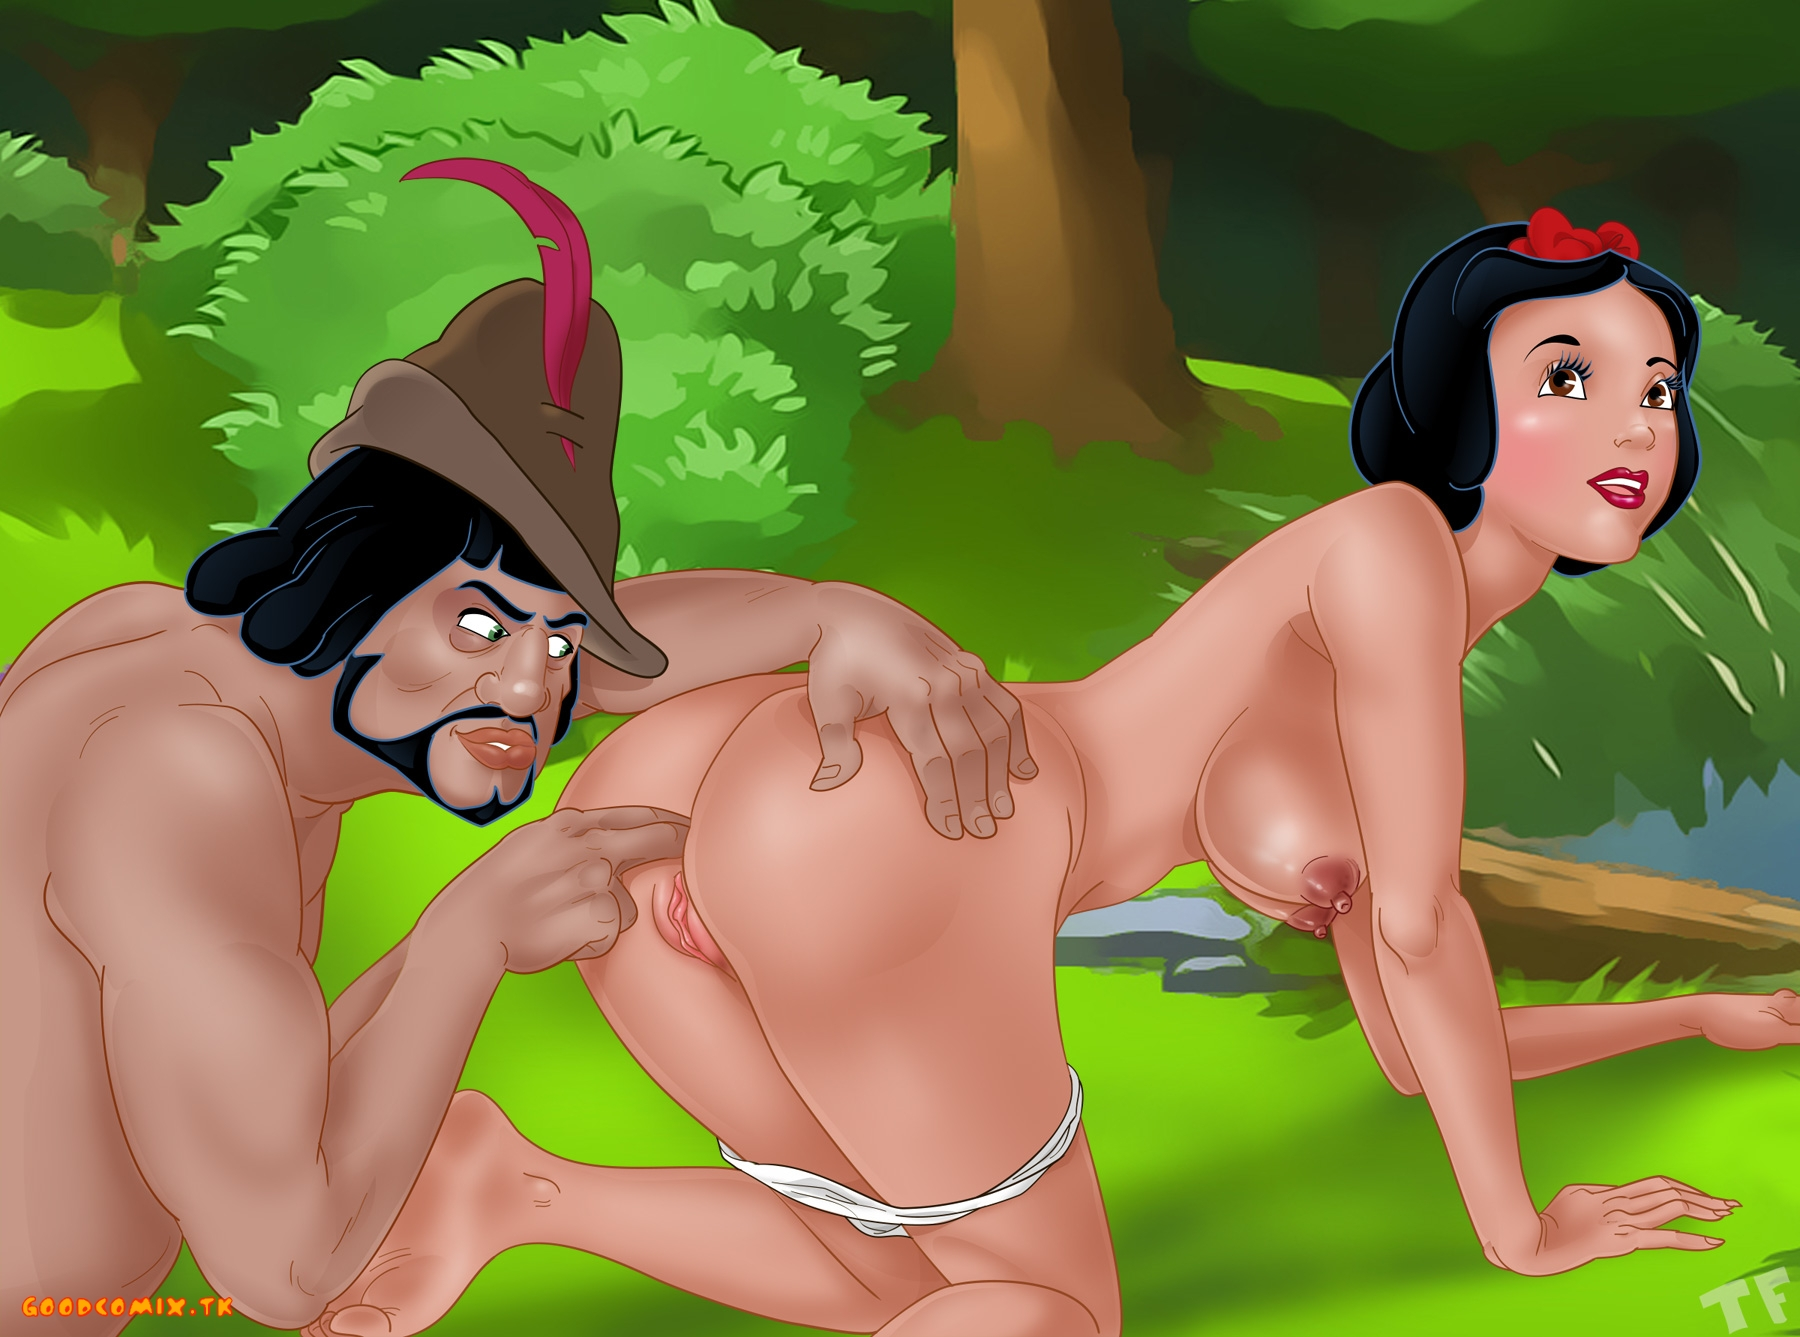 Goodcomix.tk Snow White - [TitFlaviy] - Snow White and The Huntsman